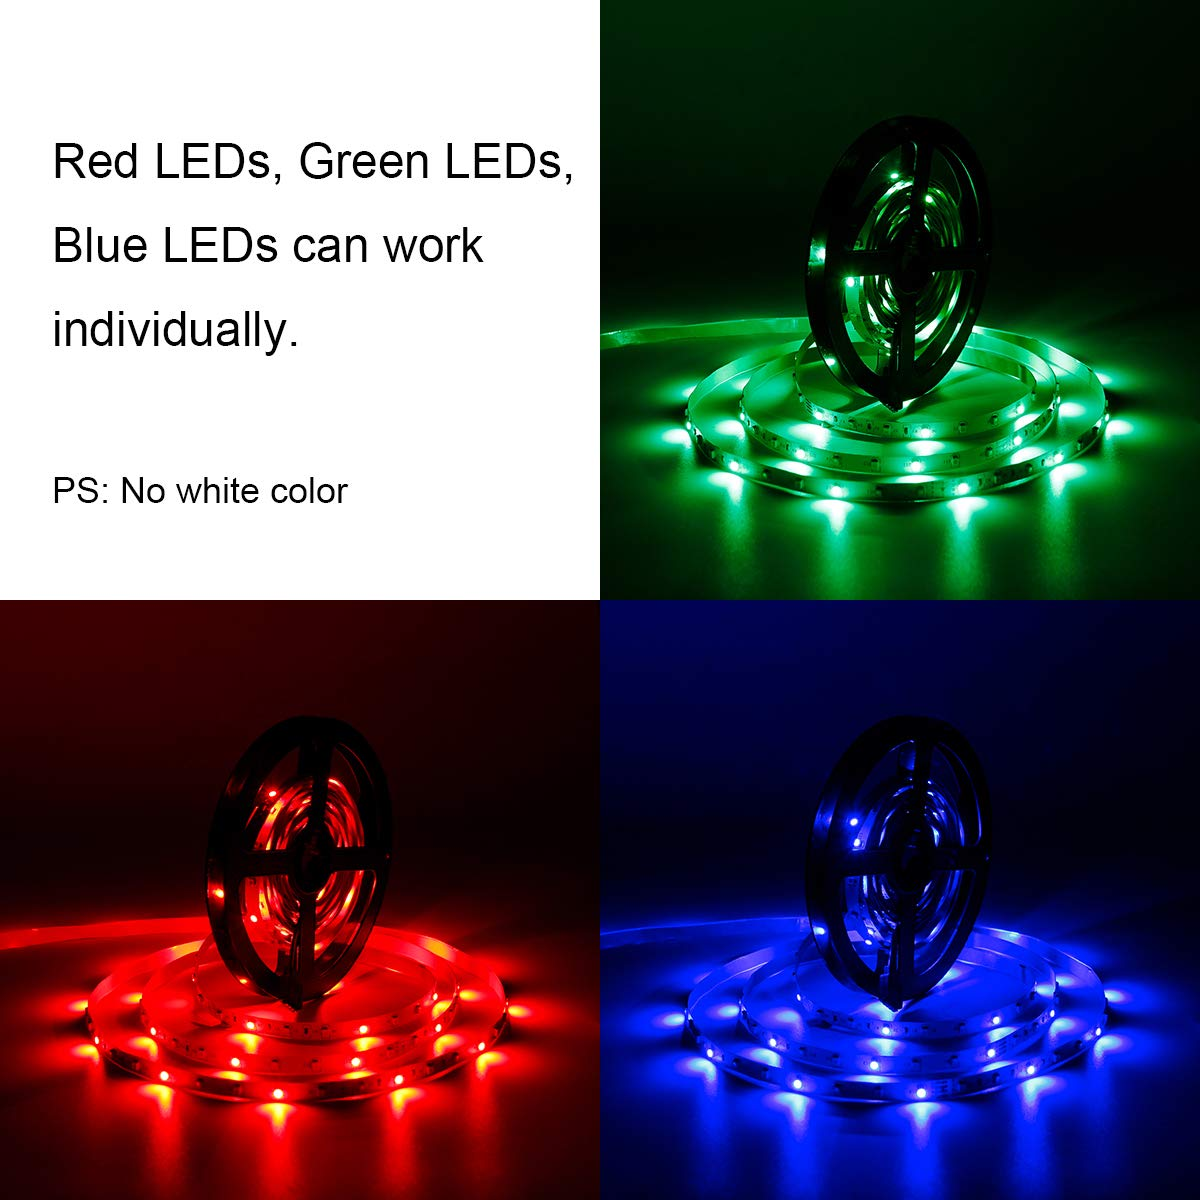 SUPERNIGHT 5M/16.4 Ft SMD 3528 RGB 300 LED Color Changing Kit with Flexible Strip Light+24 Key IR Remote Control+ Power Supply by SUPERNIGHT (Image #6)